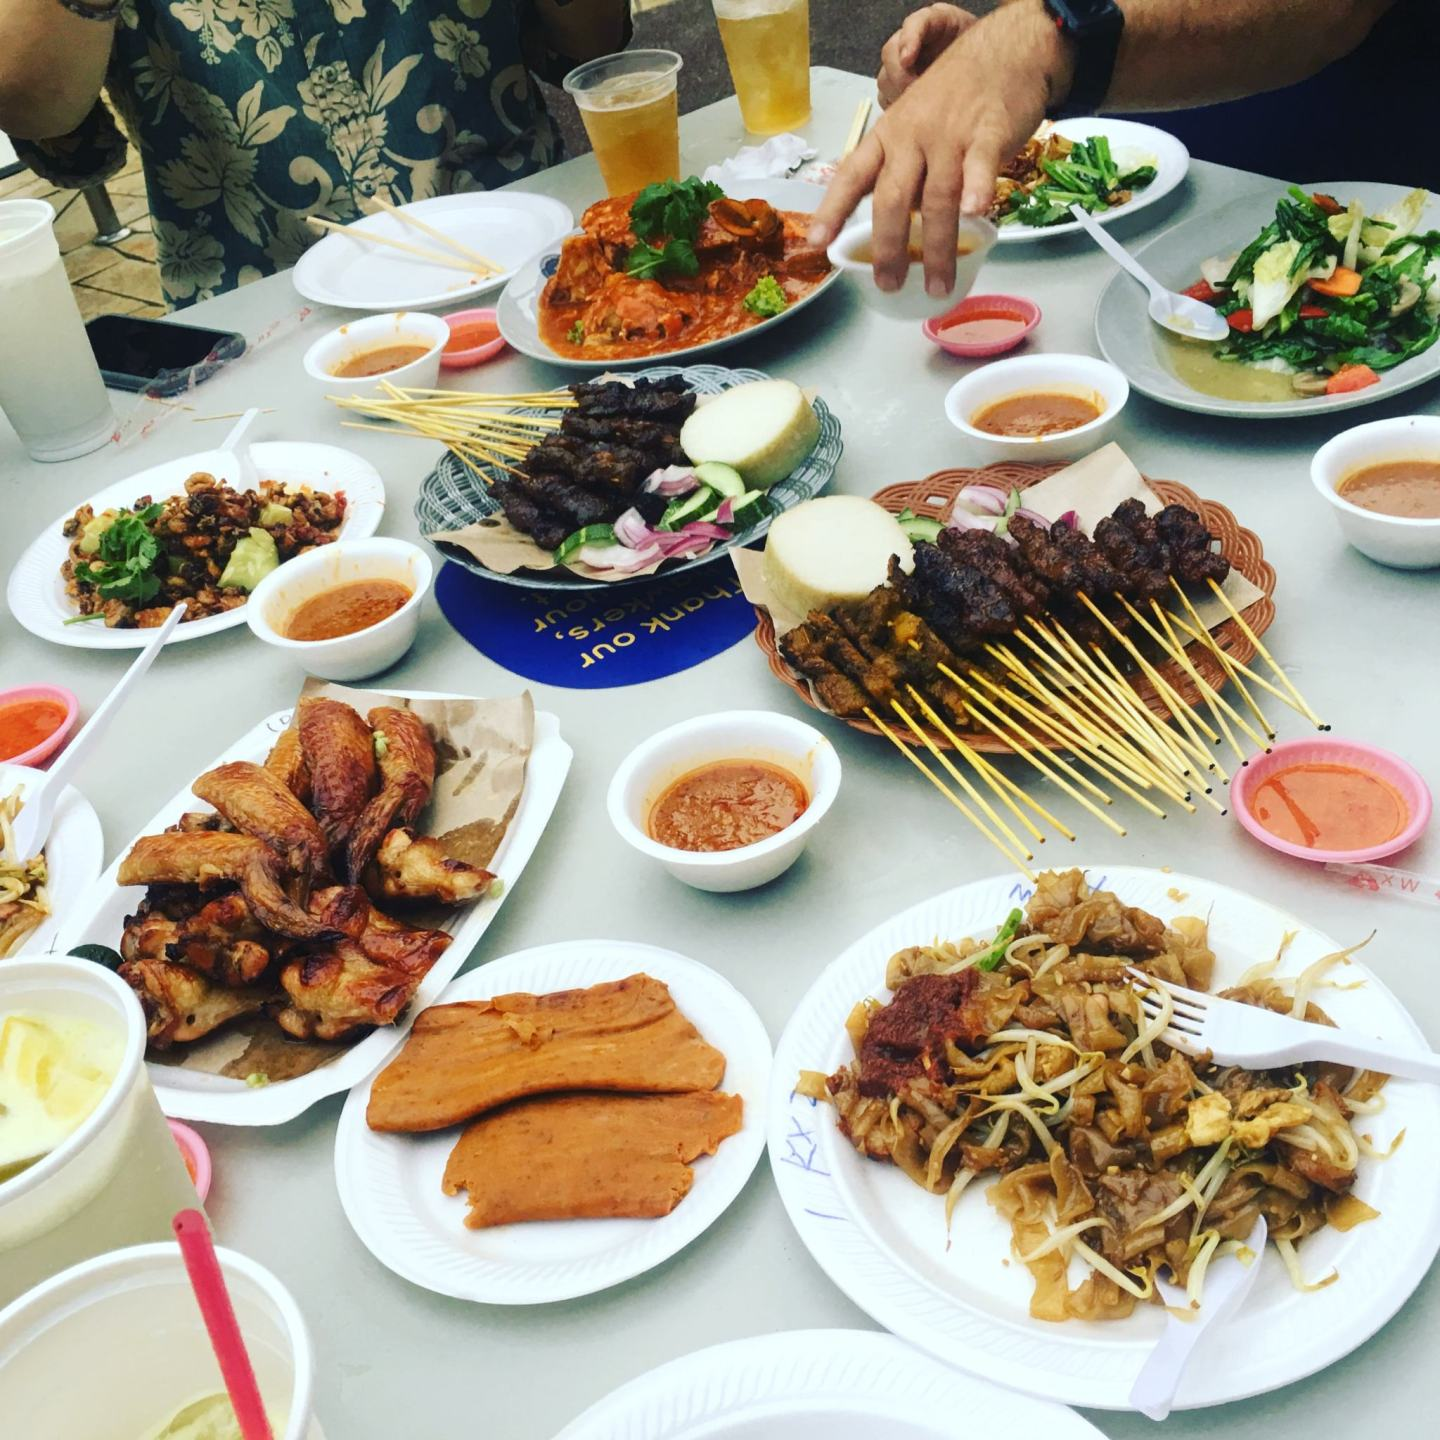 Restaurants in Singapore: Bak Kut Teh, Chili Crab & More